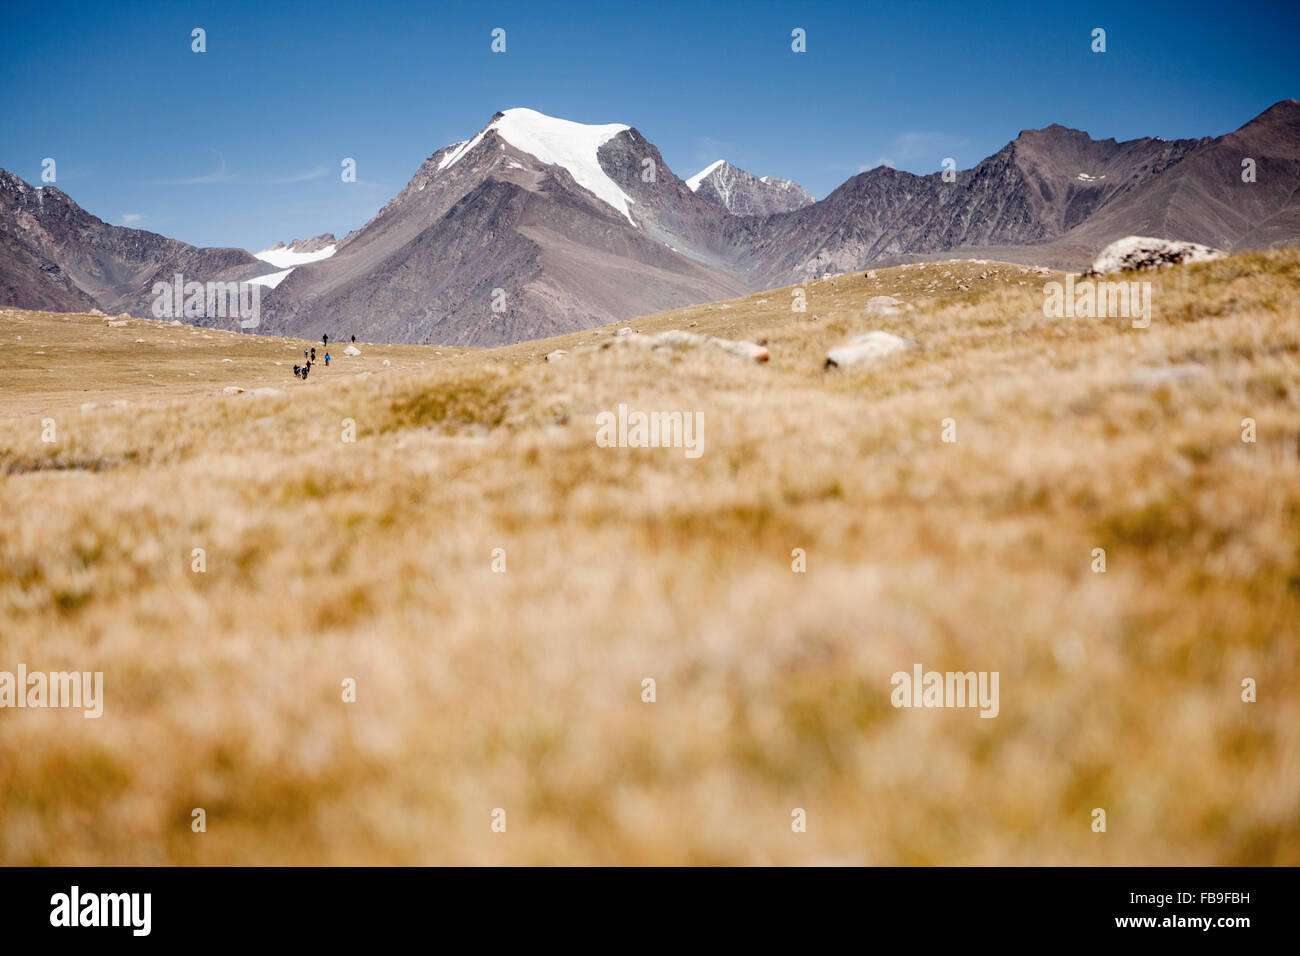 Hikers in the distance in Kharkhiraa Turgen National Park in remote far-western Mongolia. - Stock Image